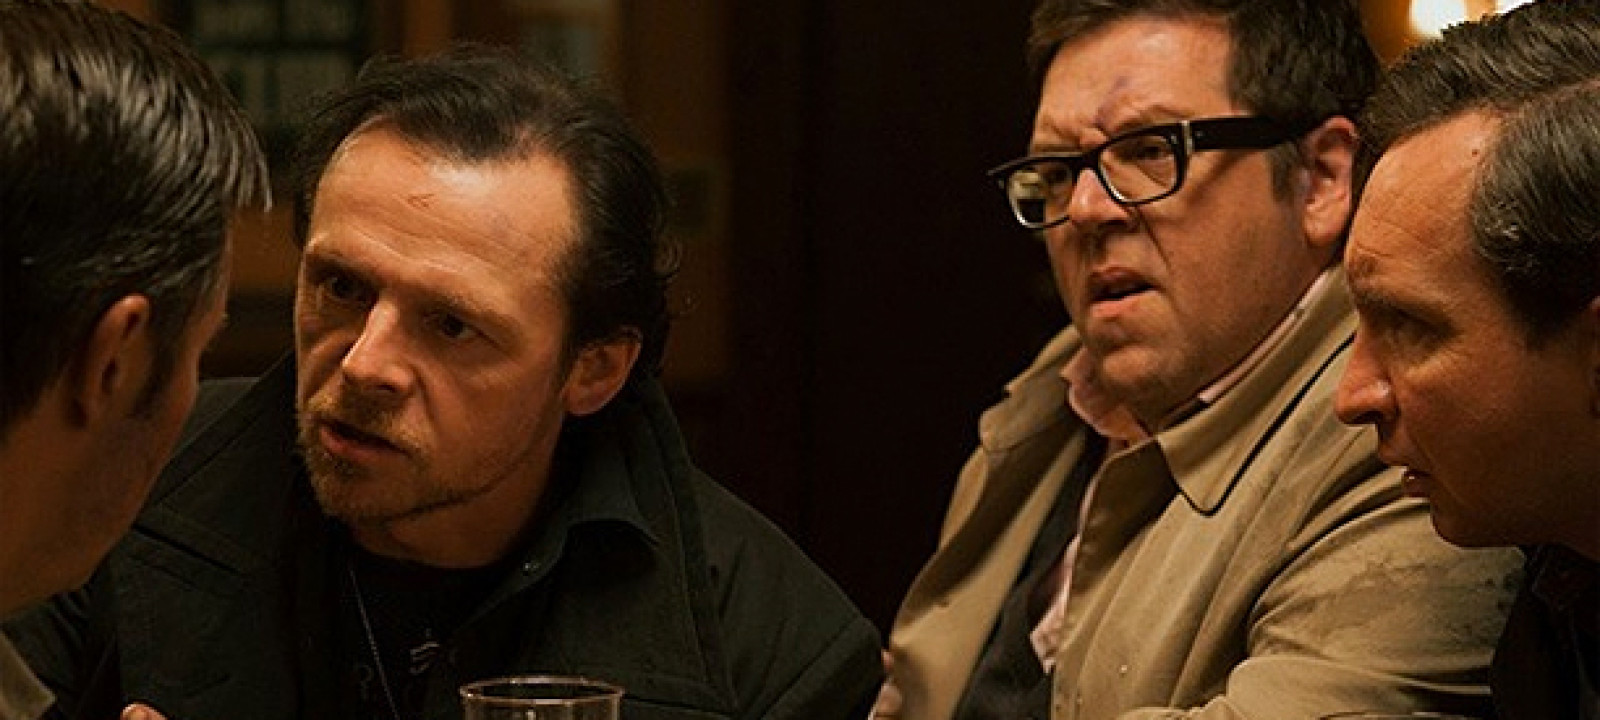 Simon Pegg and Nick Frost in 'The World's End'